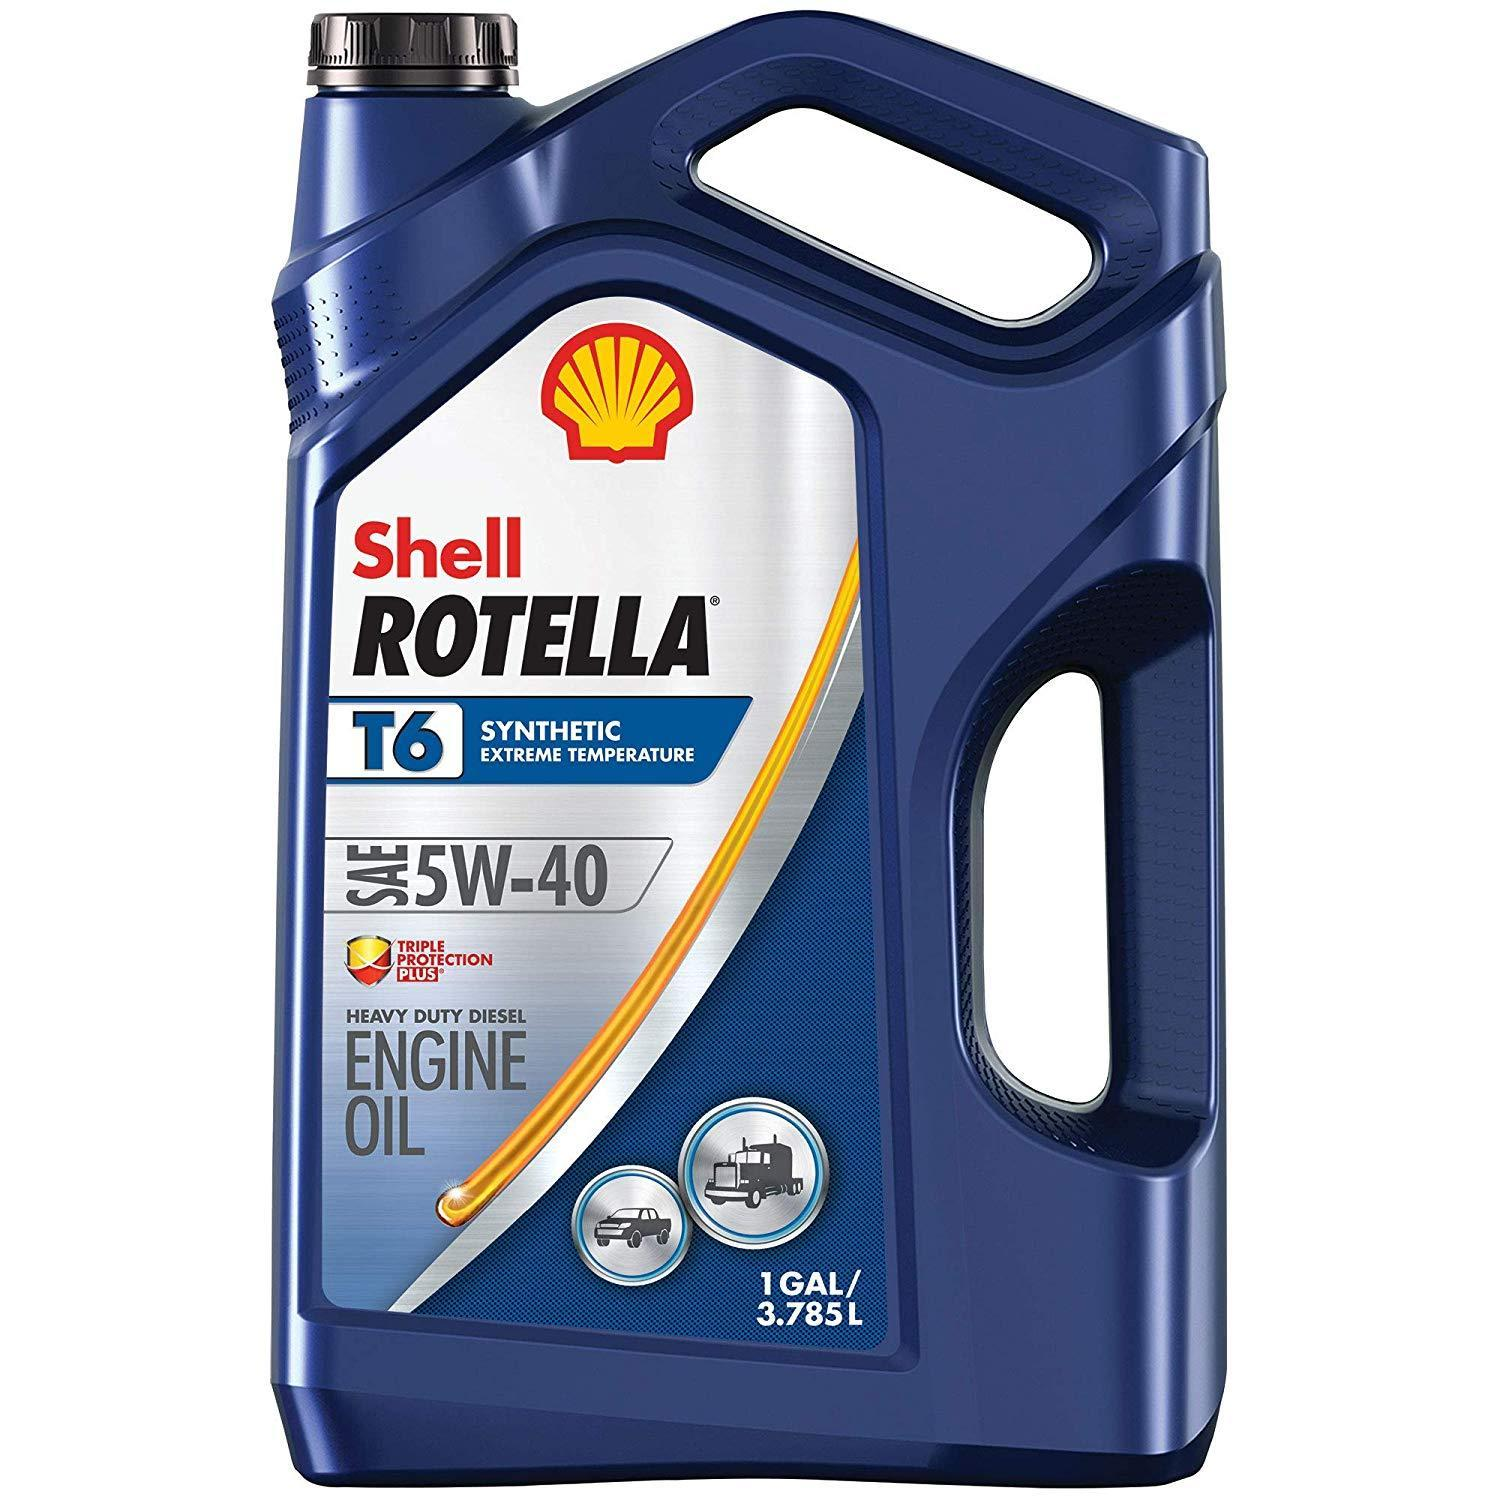 3-Pack of 1-Gallon Shell Rotella T6 Full Synthetic Diesel Engine Oil (5W-40)